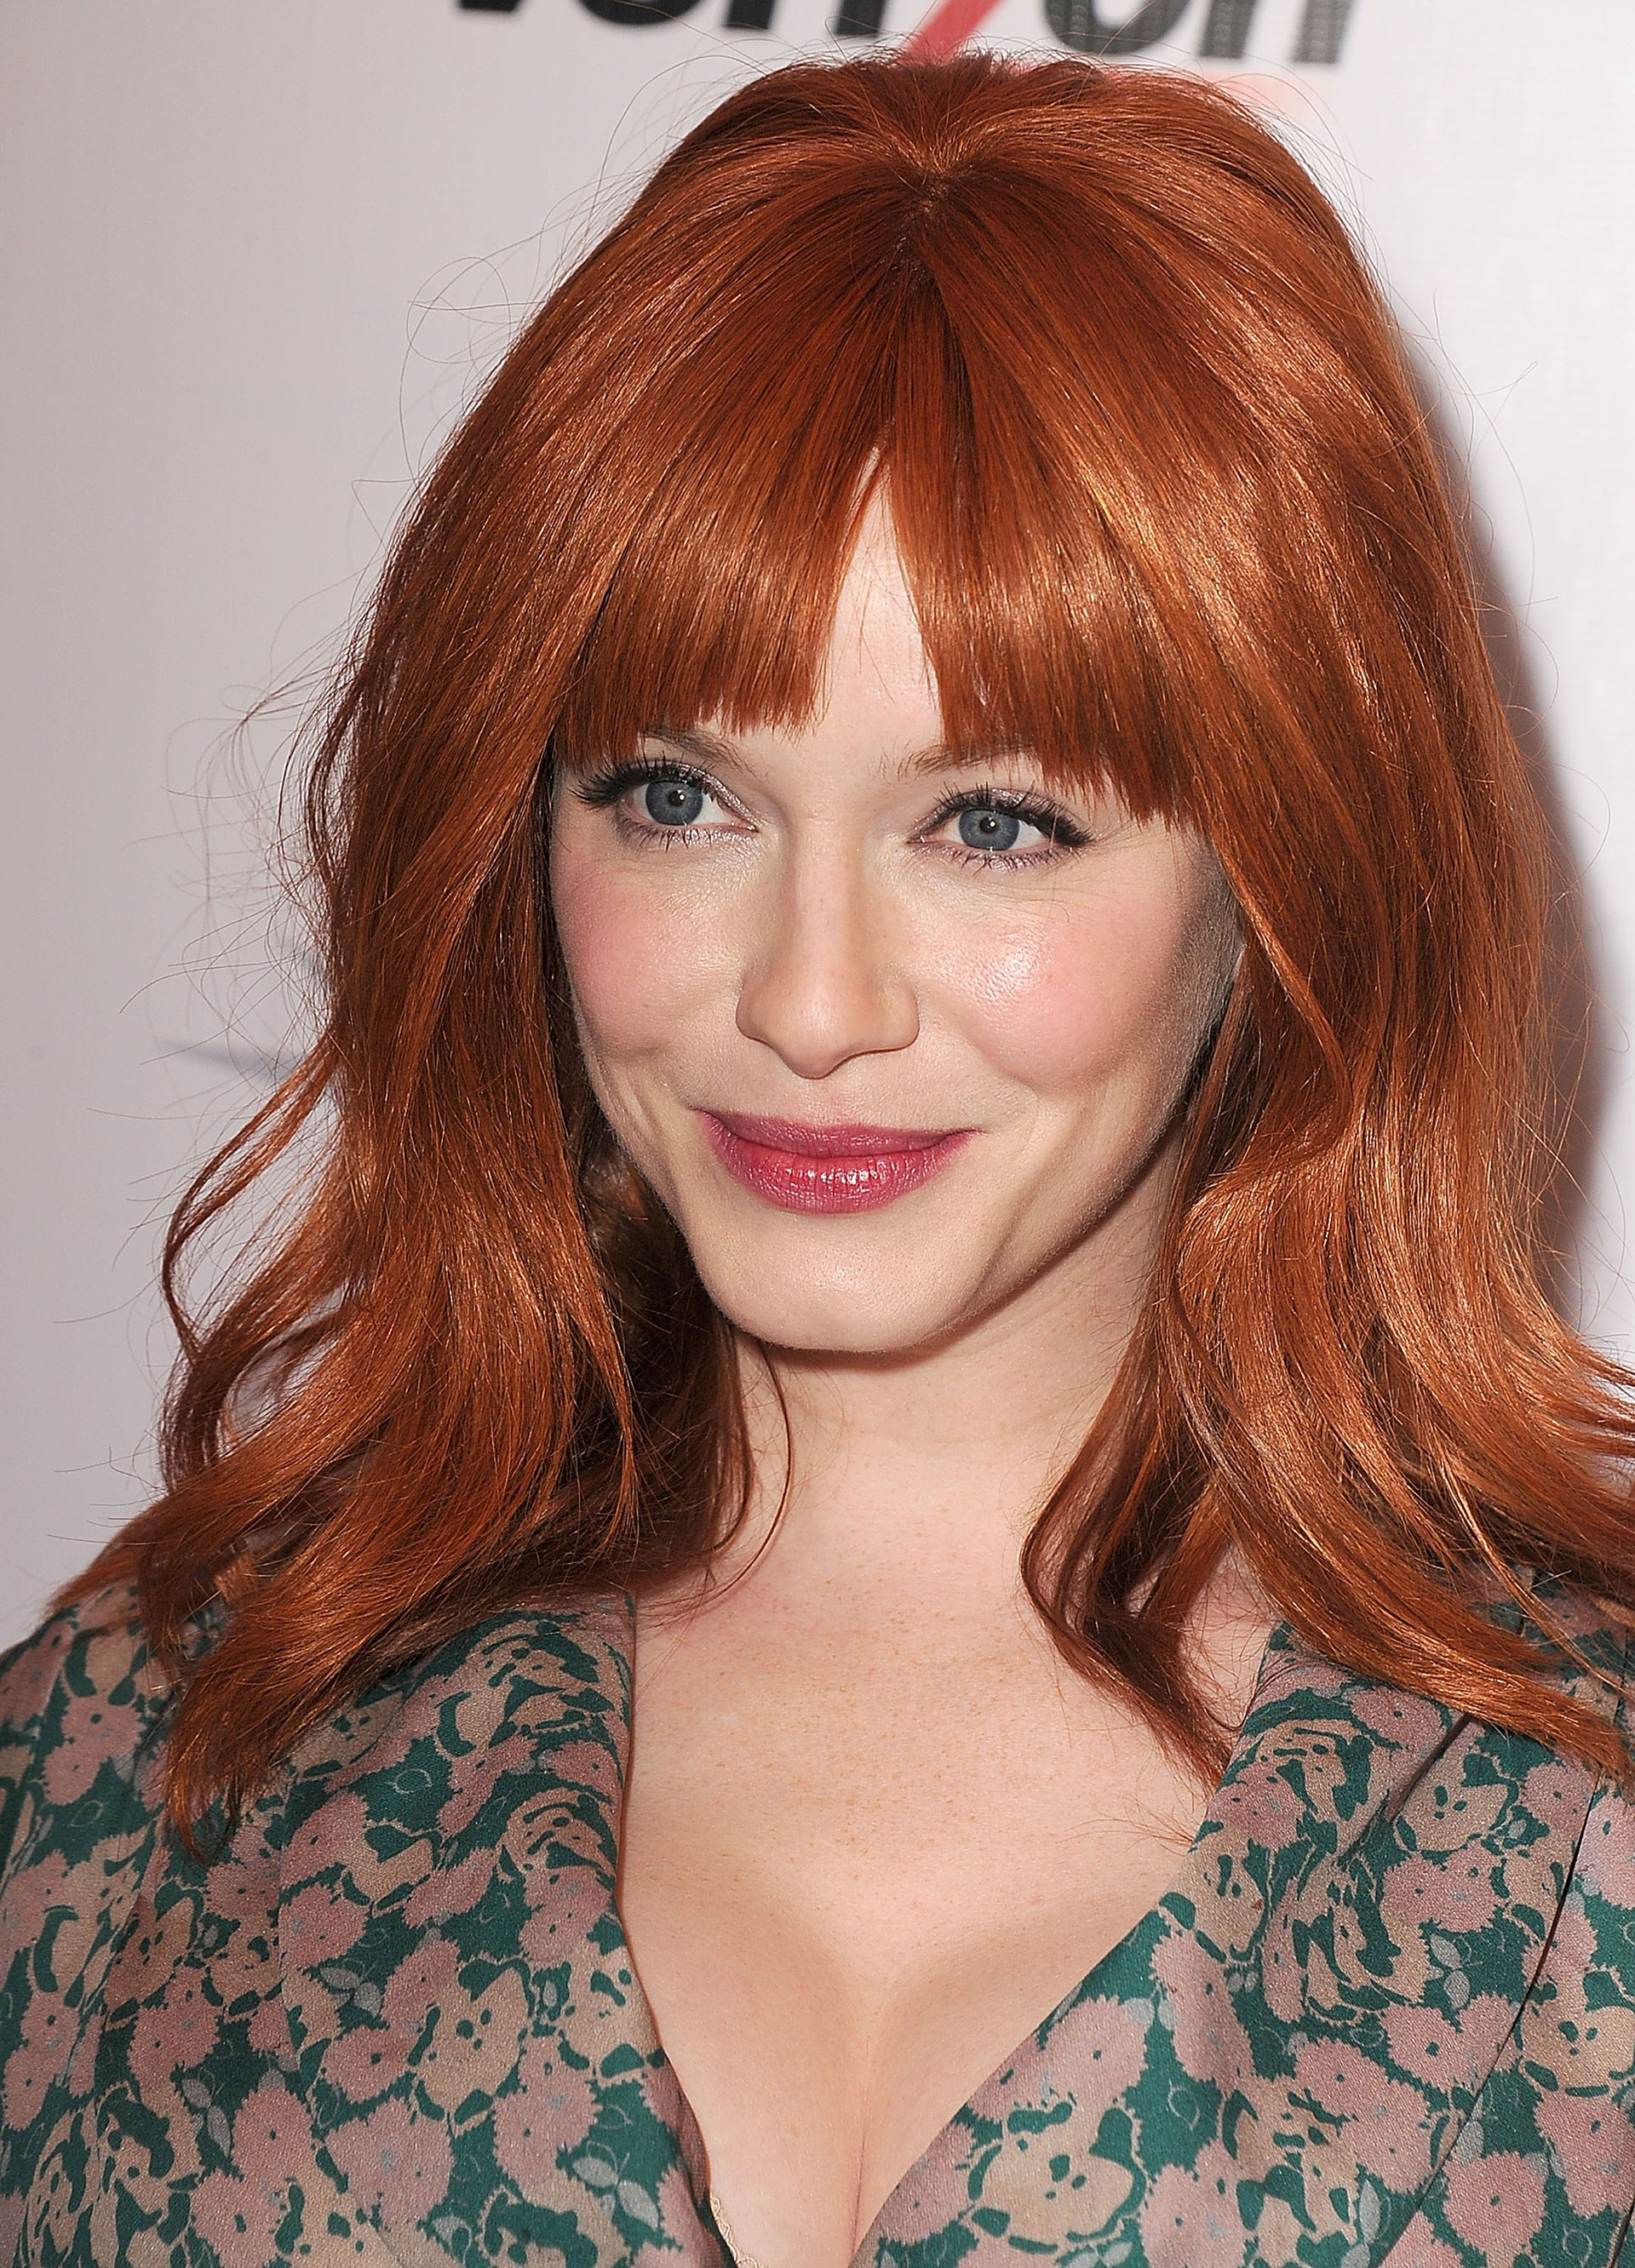 red hairstyles - celebrity hairstyles for redheads